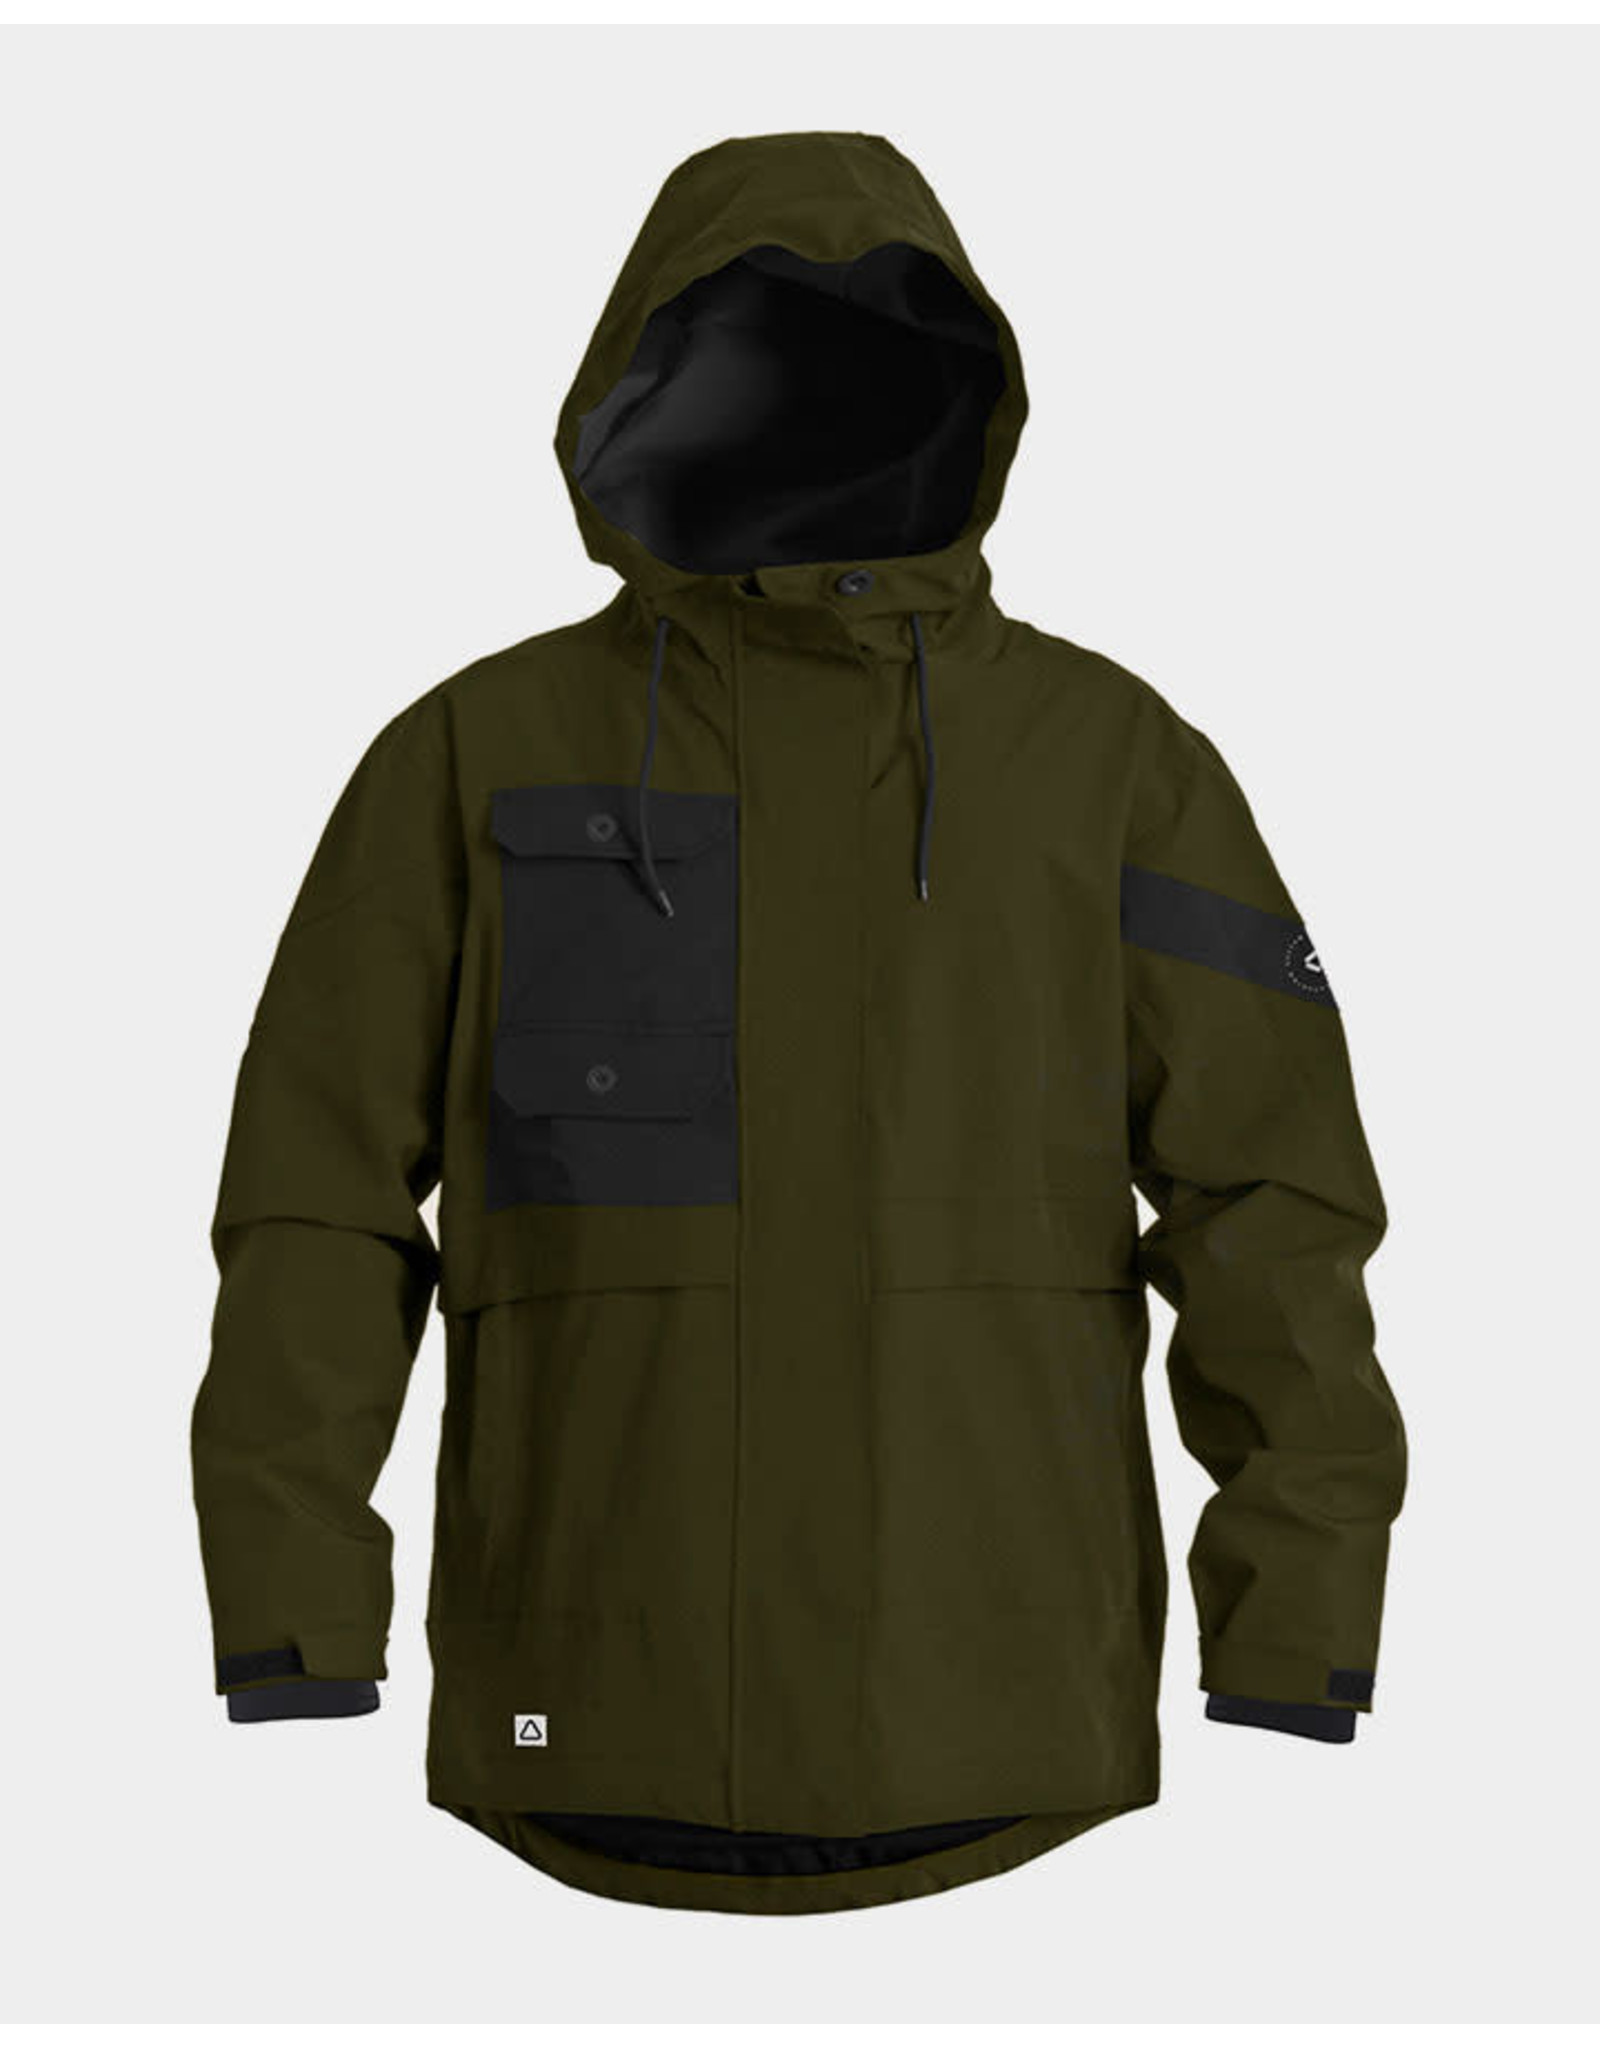 Follow LAYER 3.1 OUTER SPRAY UPSTATE OLIVE